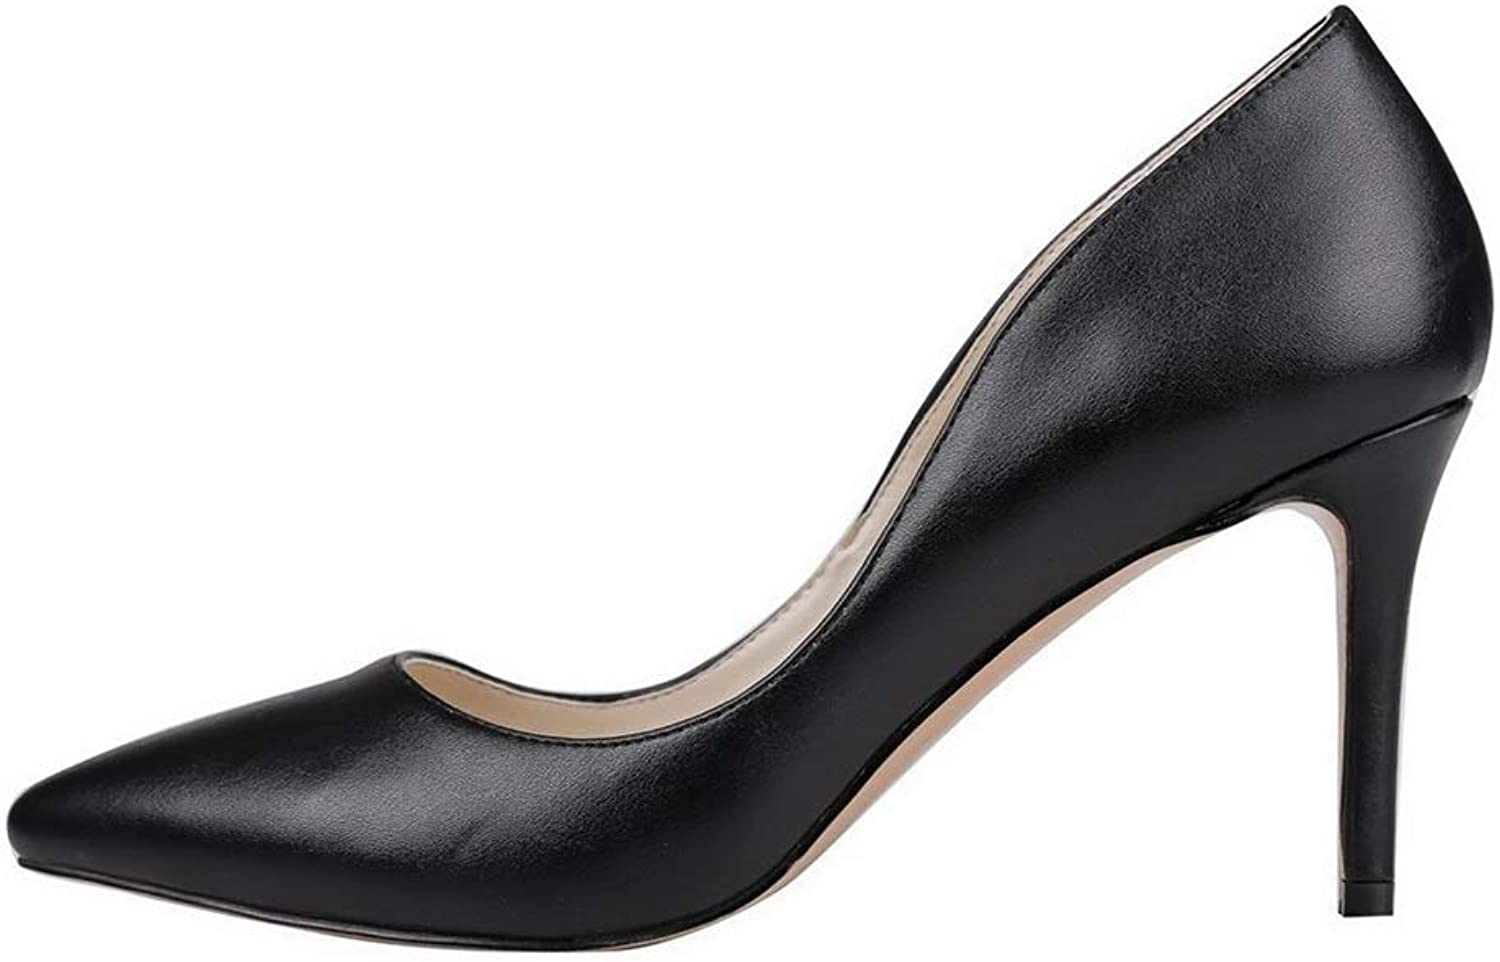 AdeeSu Womens Solid Novelty Business Urethane Pumps shoes SDC06305